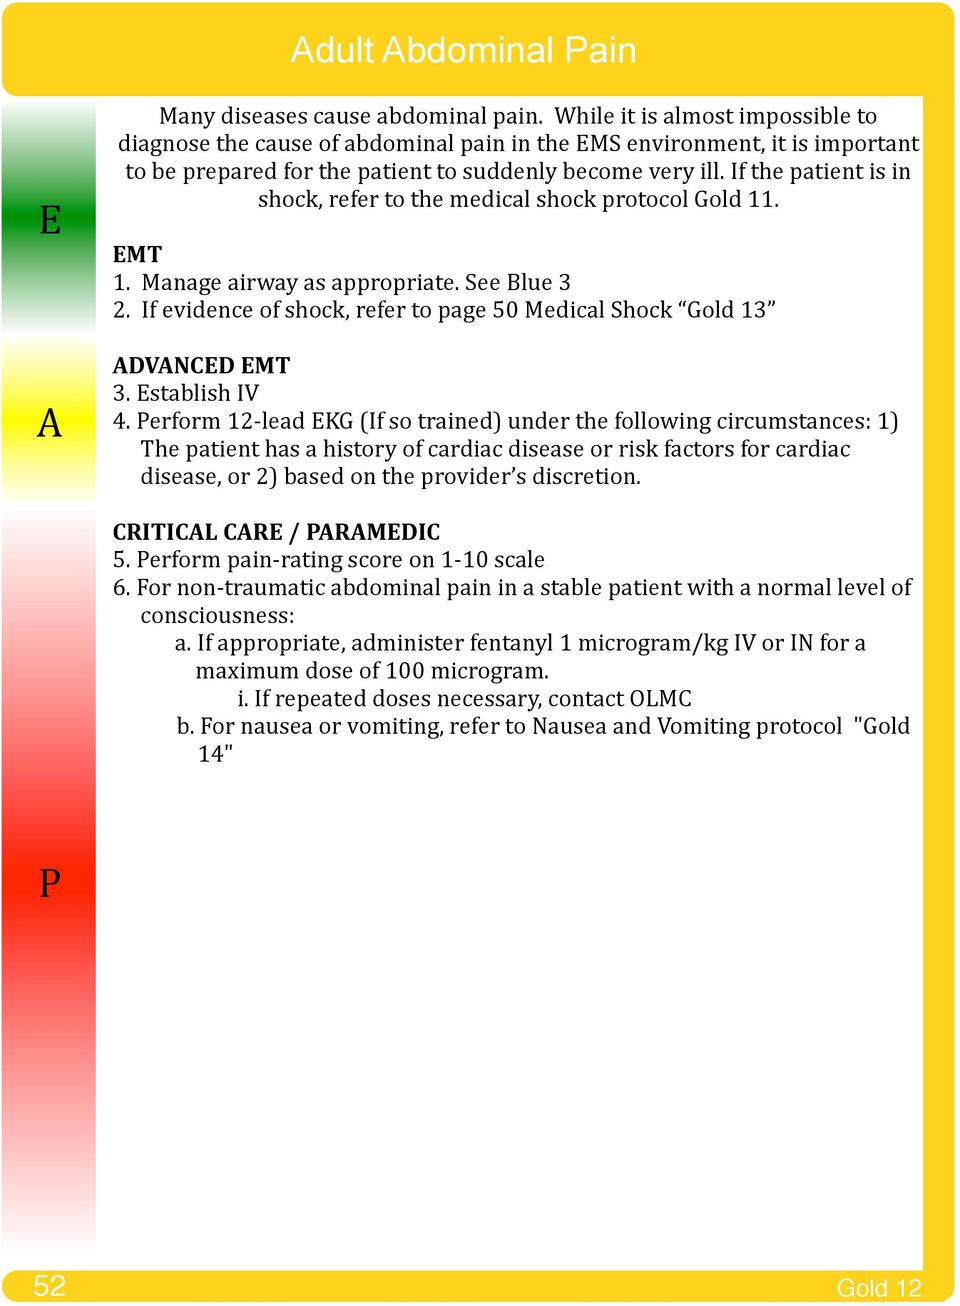 If the patient is in shock, refer to the medical shock protocol Gold 11. 1. Manage airway as appropriate. See Blue 3 2. If evidence of shock, refer to page 50 Medical Shock Gold 13 ADVANCD 3.